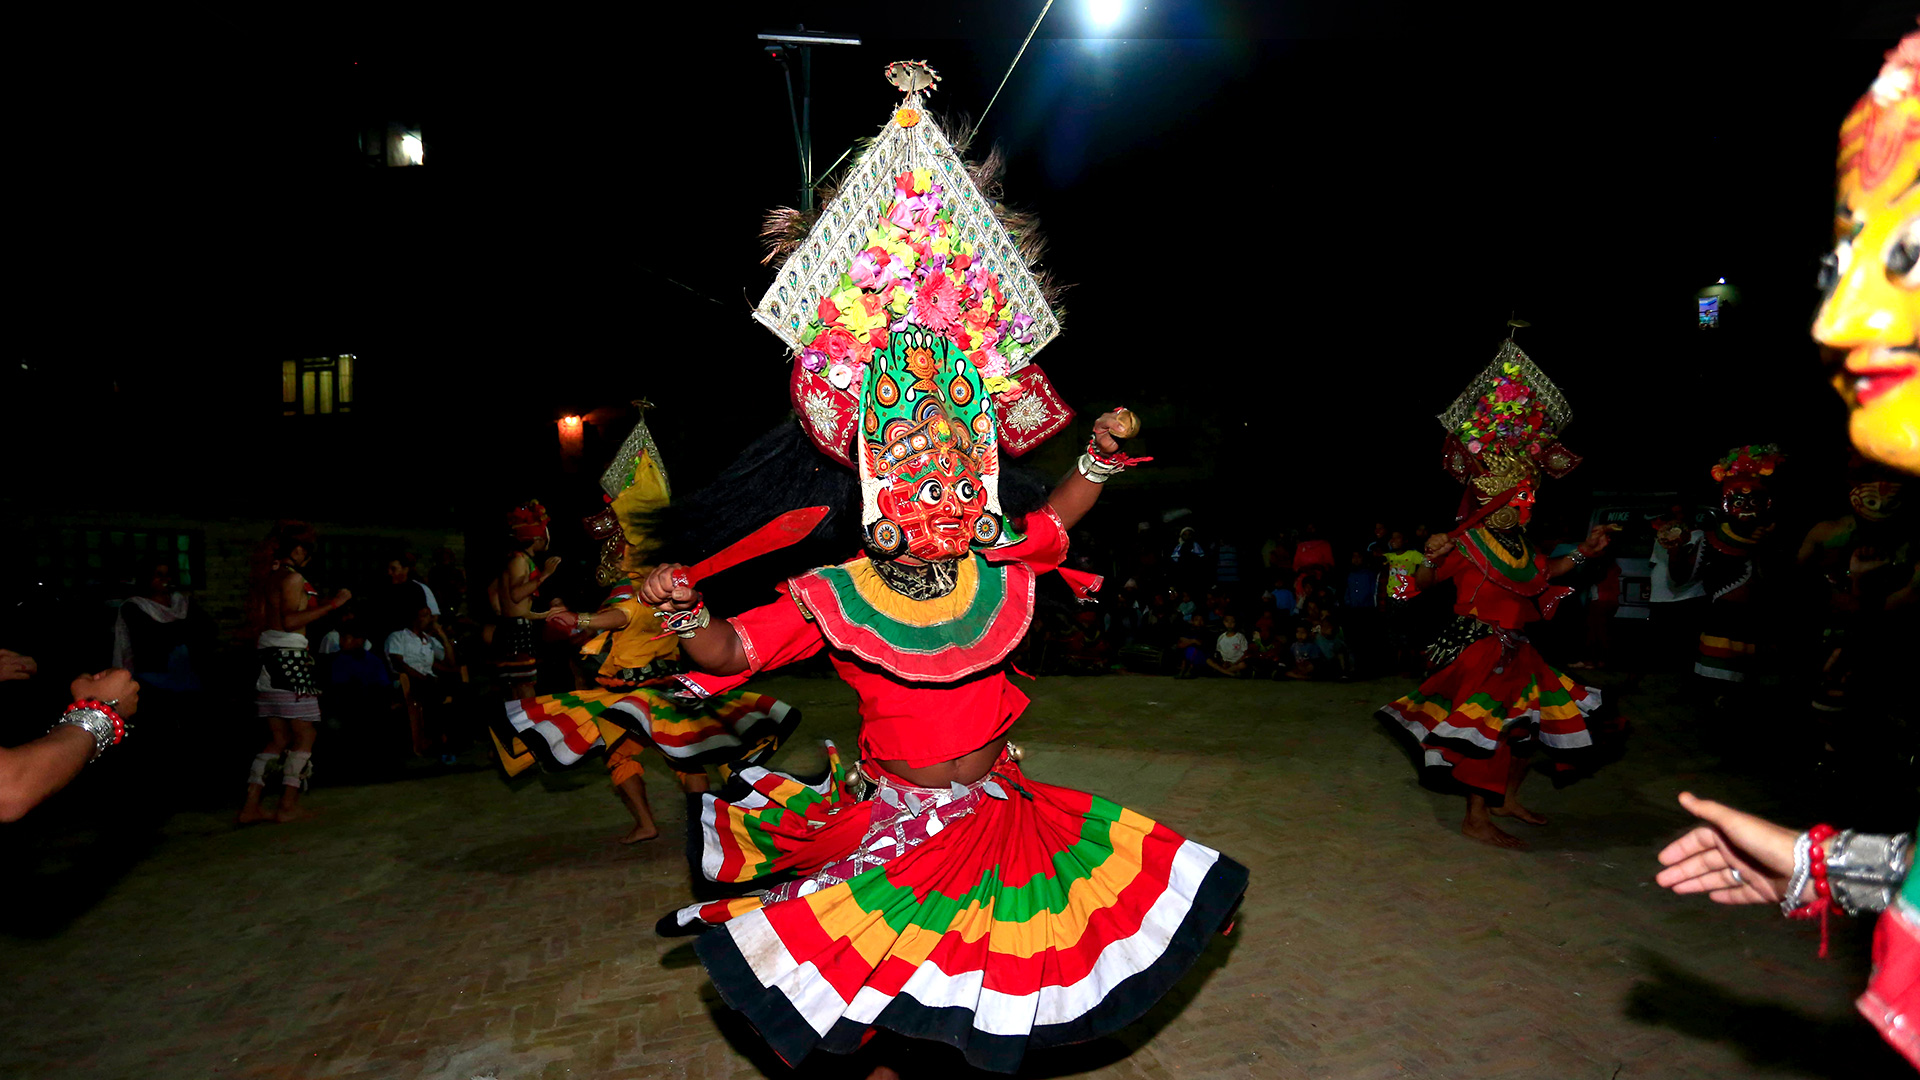 How about getting some knowledge about traditional dance forms of Bhaktapur image